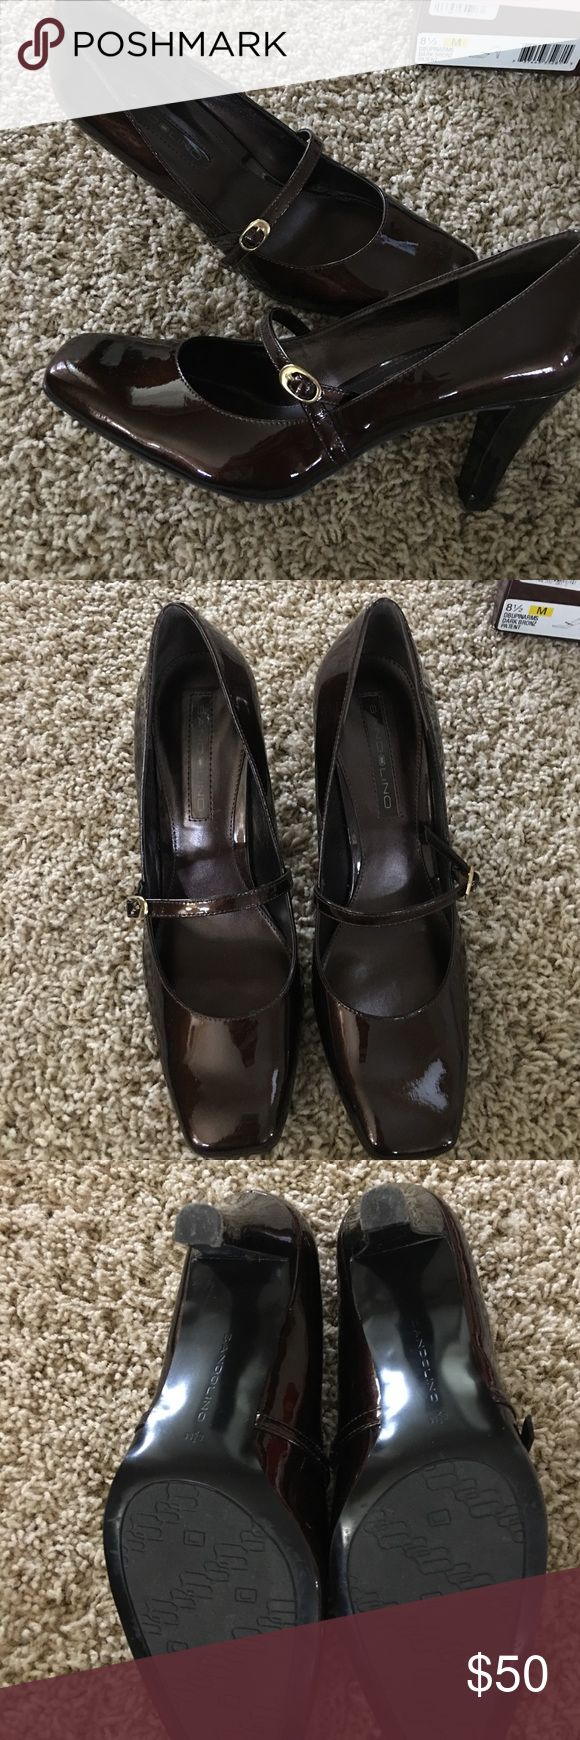 🔥Bandolino Dark Bronz Patent Heels 👠 Size 8.5 👠Gently used.  Great condition!!  Only wear is on heel bottom shown in pictures and small scuff on left shoe heel.  Super cute and great color!  👠 Bandolino Shoes Heels